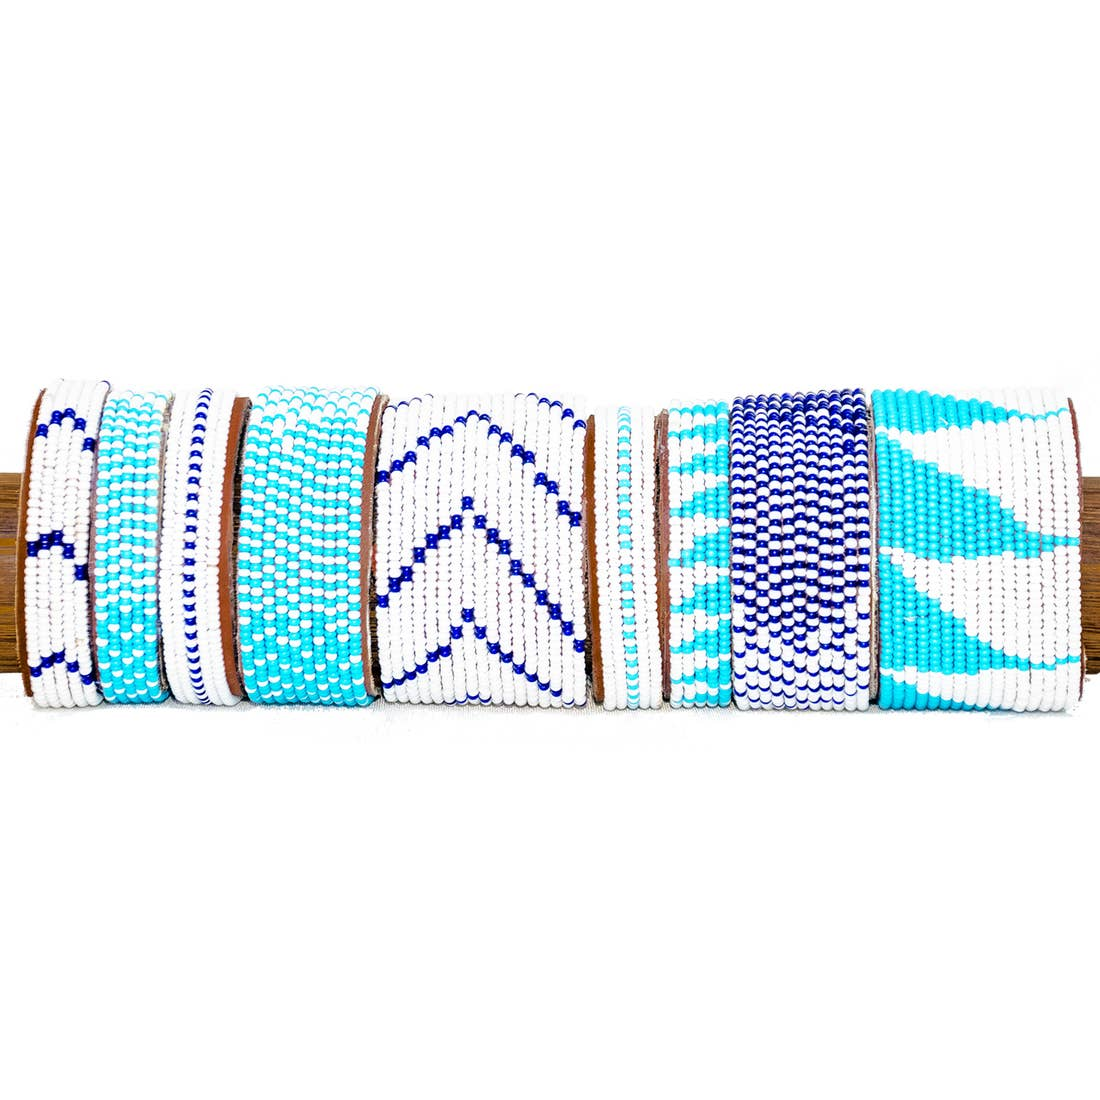 Bead and Leather Swahili Bracelet from Southern Sunday, the boutique that gives back.  Southern Sunday offers the latest in ladies fashion and accessories at affordable prices.  Southern Sunday is located in Midway, KY, outside of Lexington, Kentucky.  Shop Southern Sunday online or in store at their boutique.